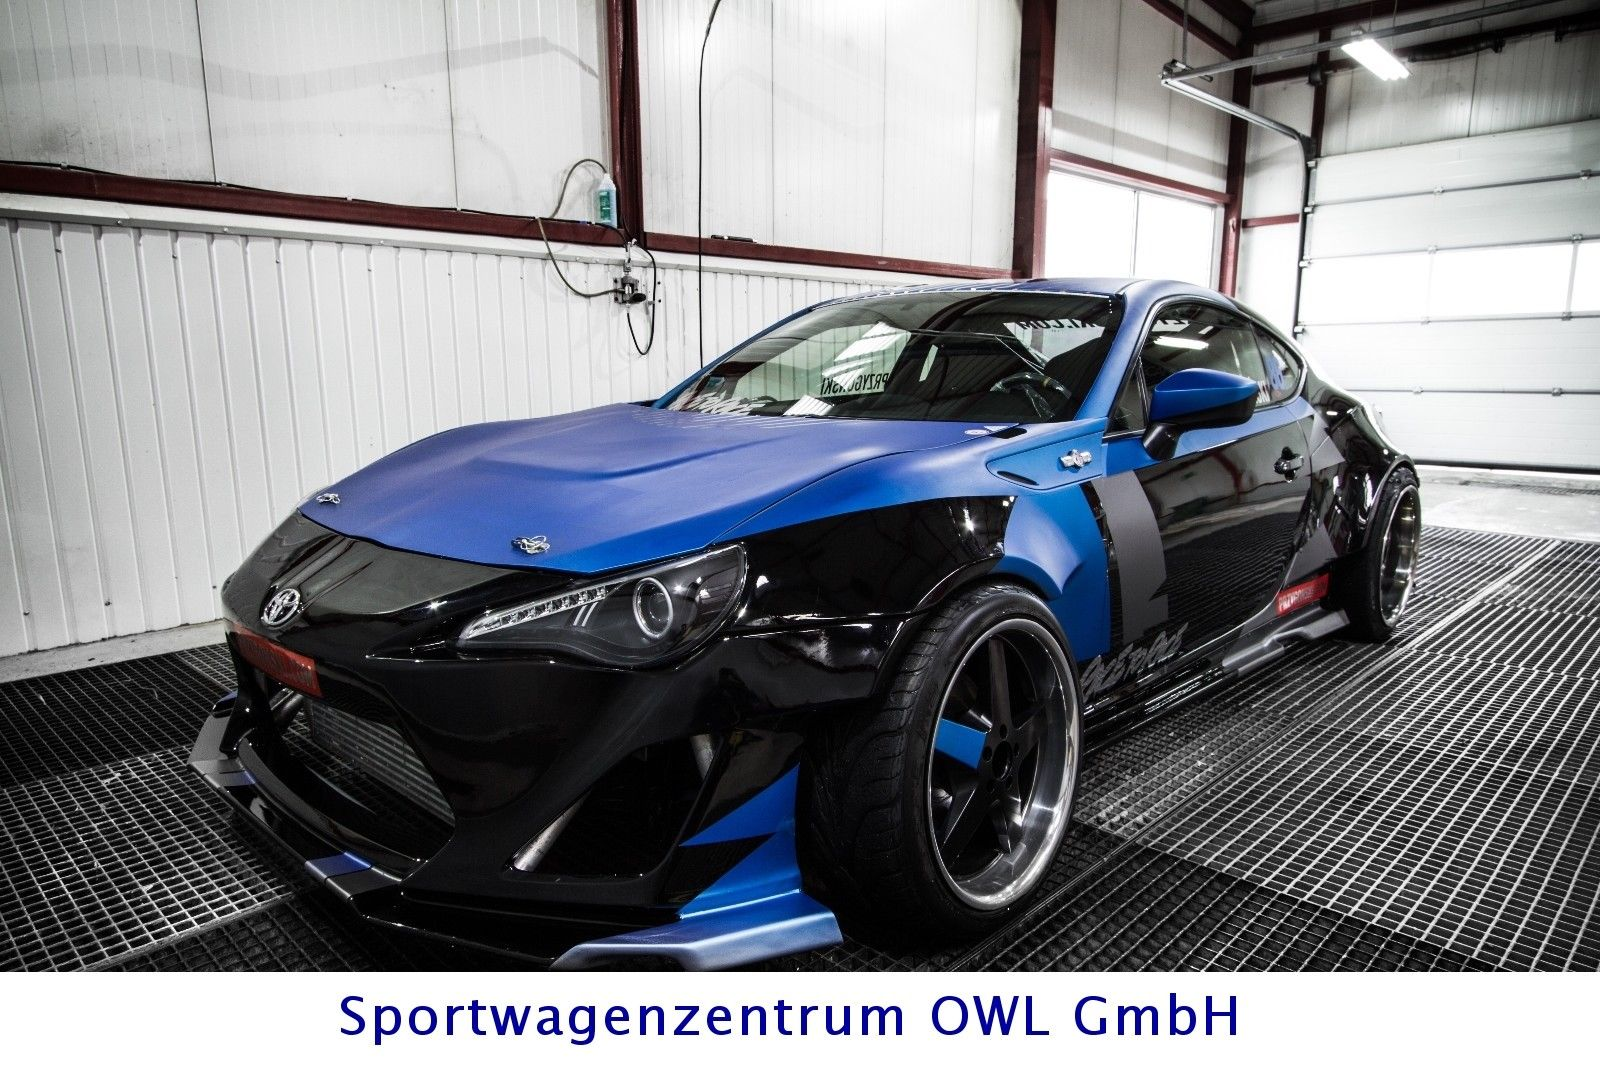 toyota gt86 full professional drift car 850hp aufbau 16